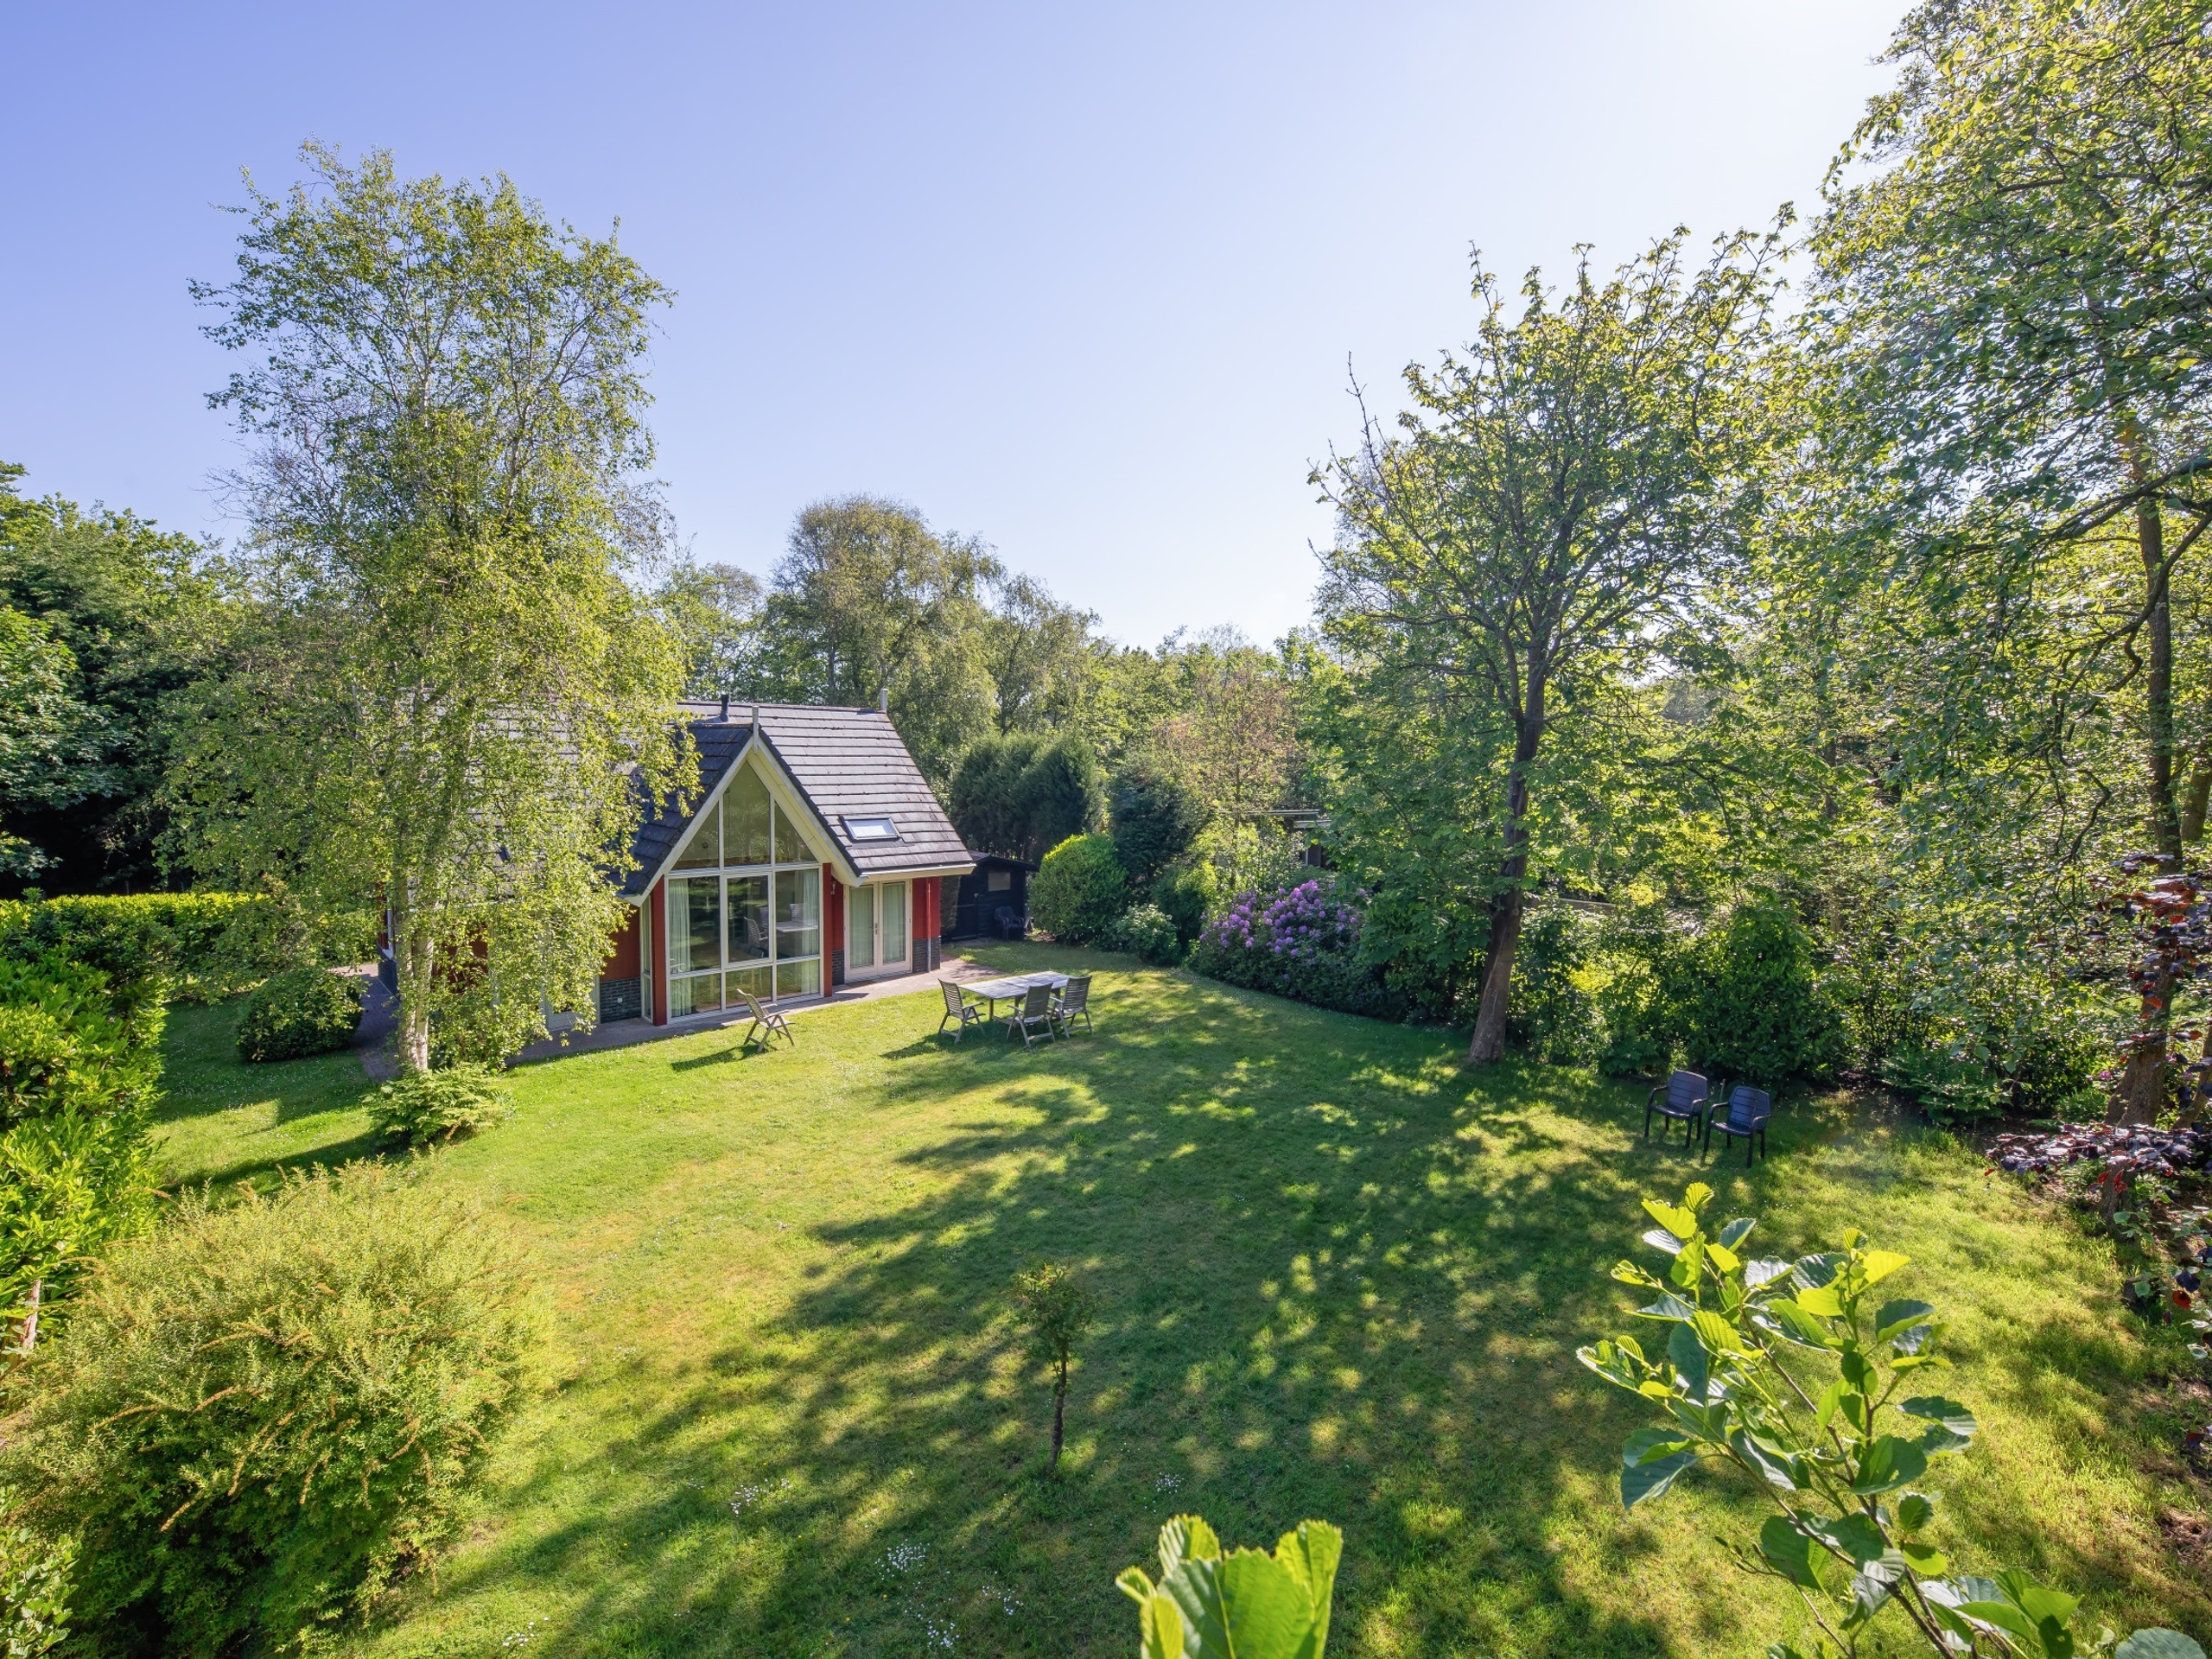 Attractive detached holiday home with lots of privacy on a forest path in the middle of the forest